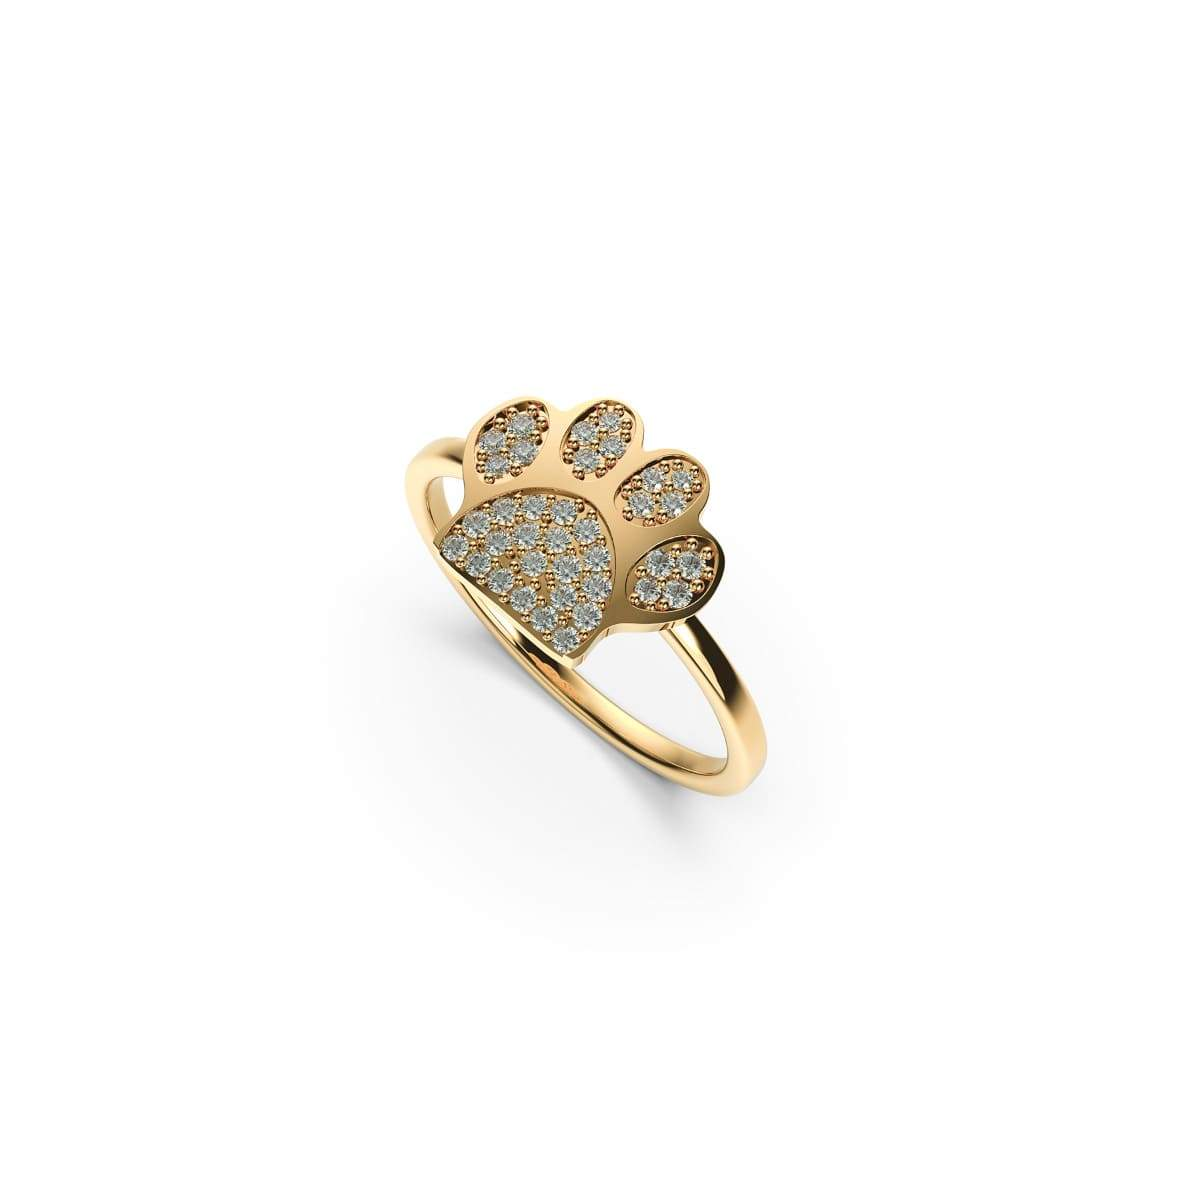 Paw | 18k Gold Vermeil | .925 Sterling Silver | Cubic Zirconia Crystal Pup Print Ring